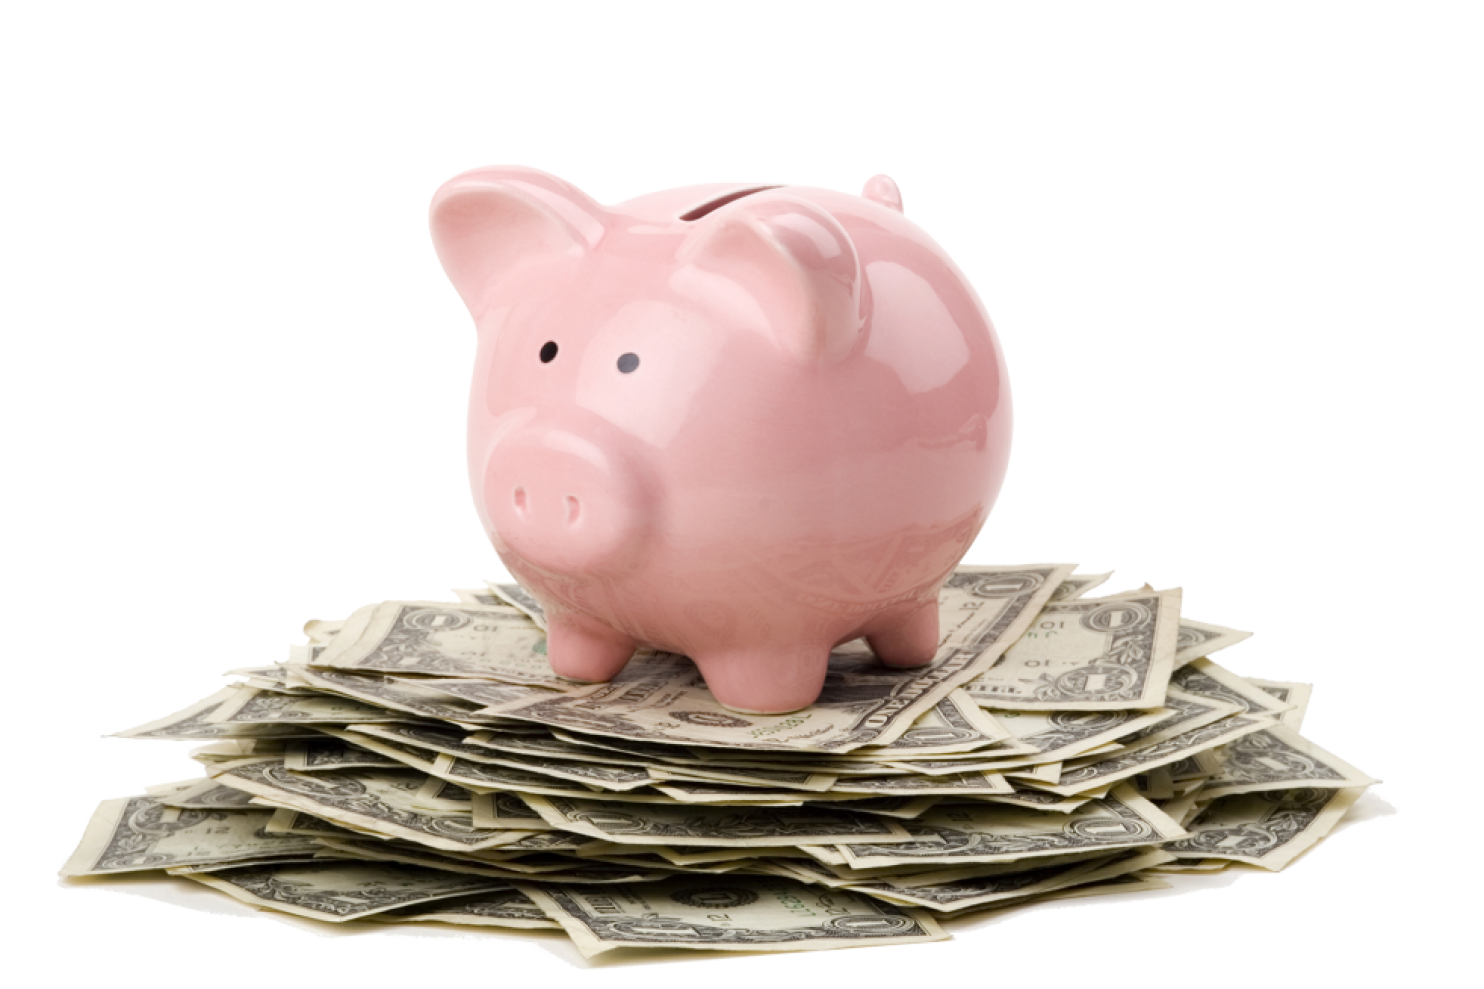 You can repay a loan with a mortgage refinance